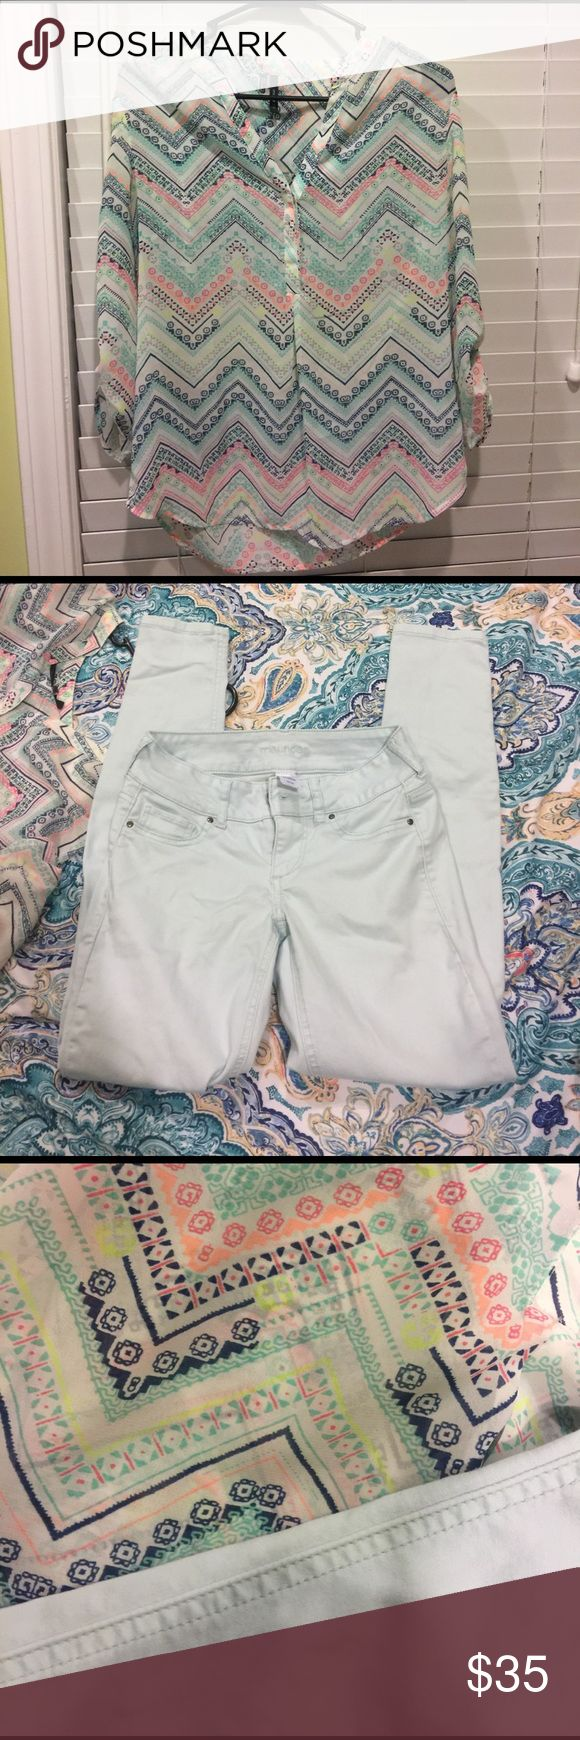 Mauries spring outfit Small mauries top- wore very few times. Hand washed and hung to dry. Mauries xs jeggings- washed on cold and hung to dry also. Would like to sell together since it's a matching outfit. Asking $35 for full outfit Maurices Other